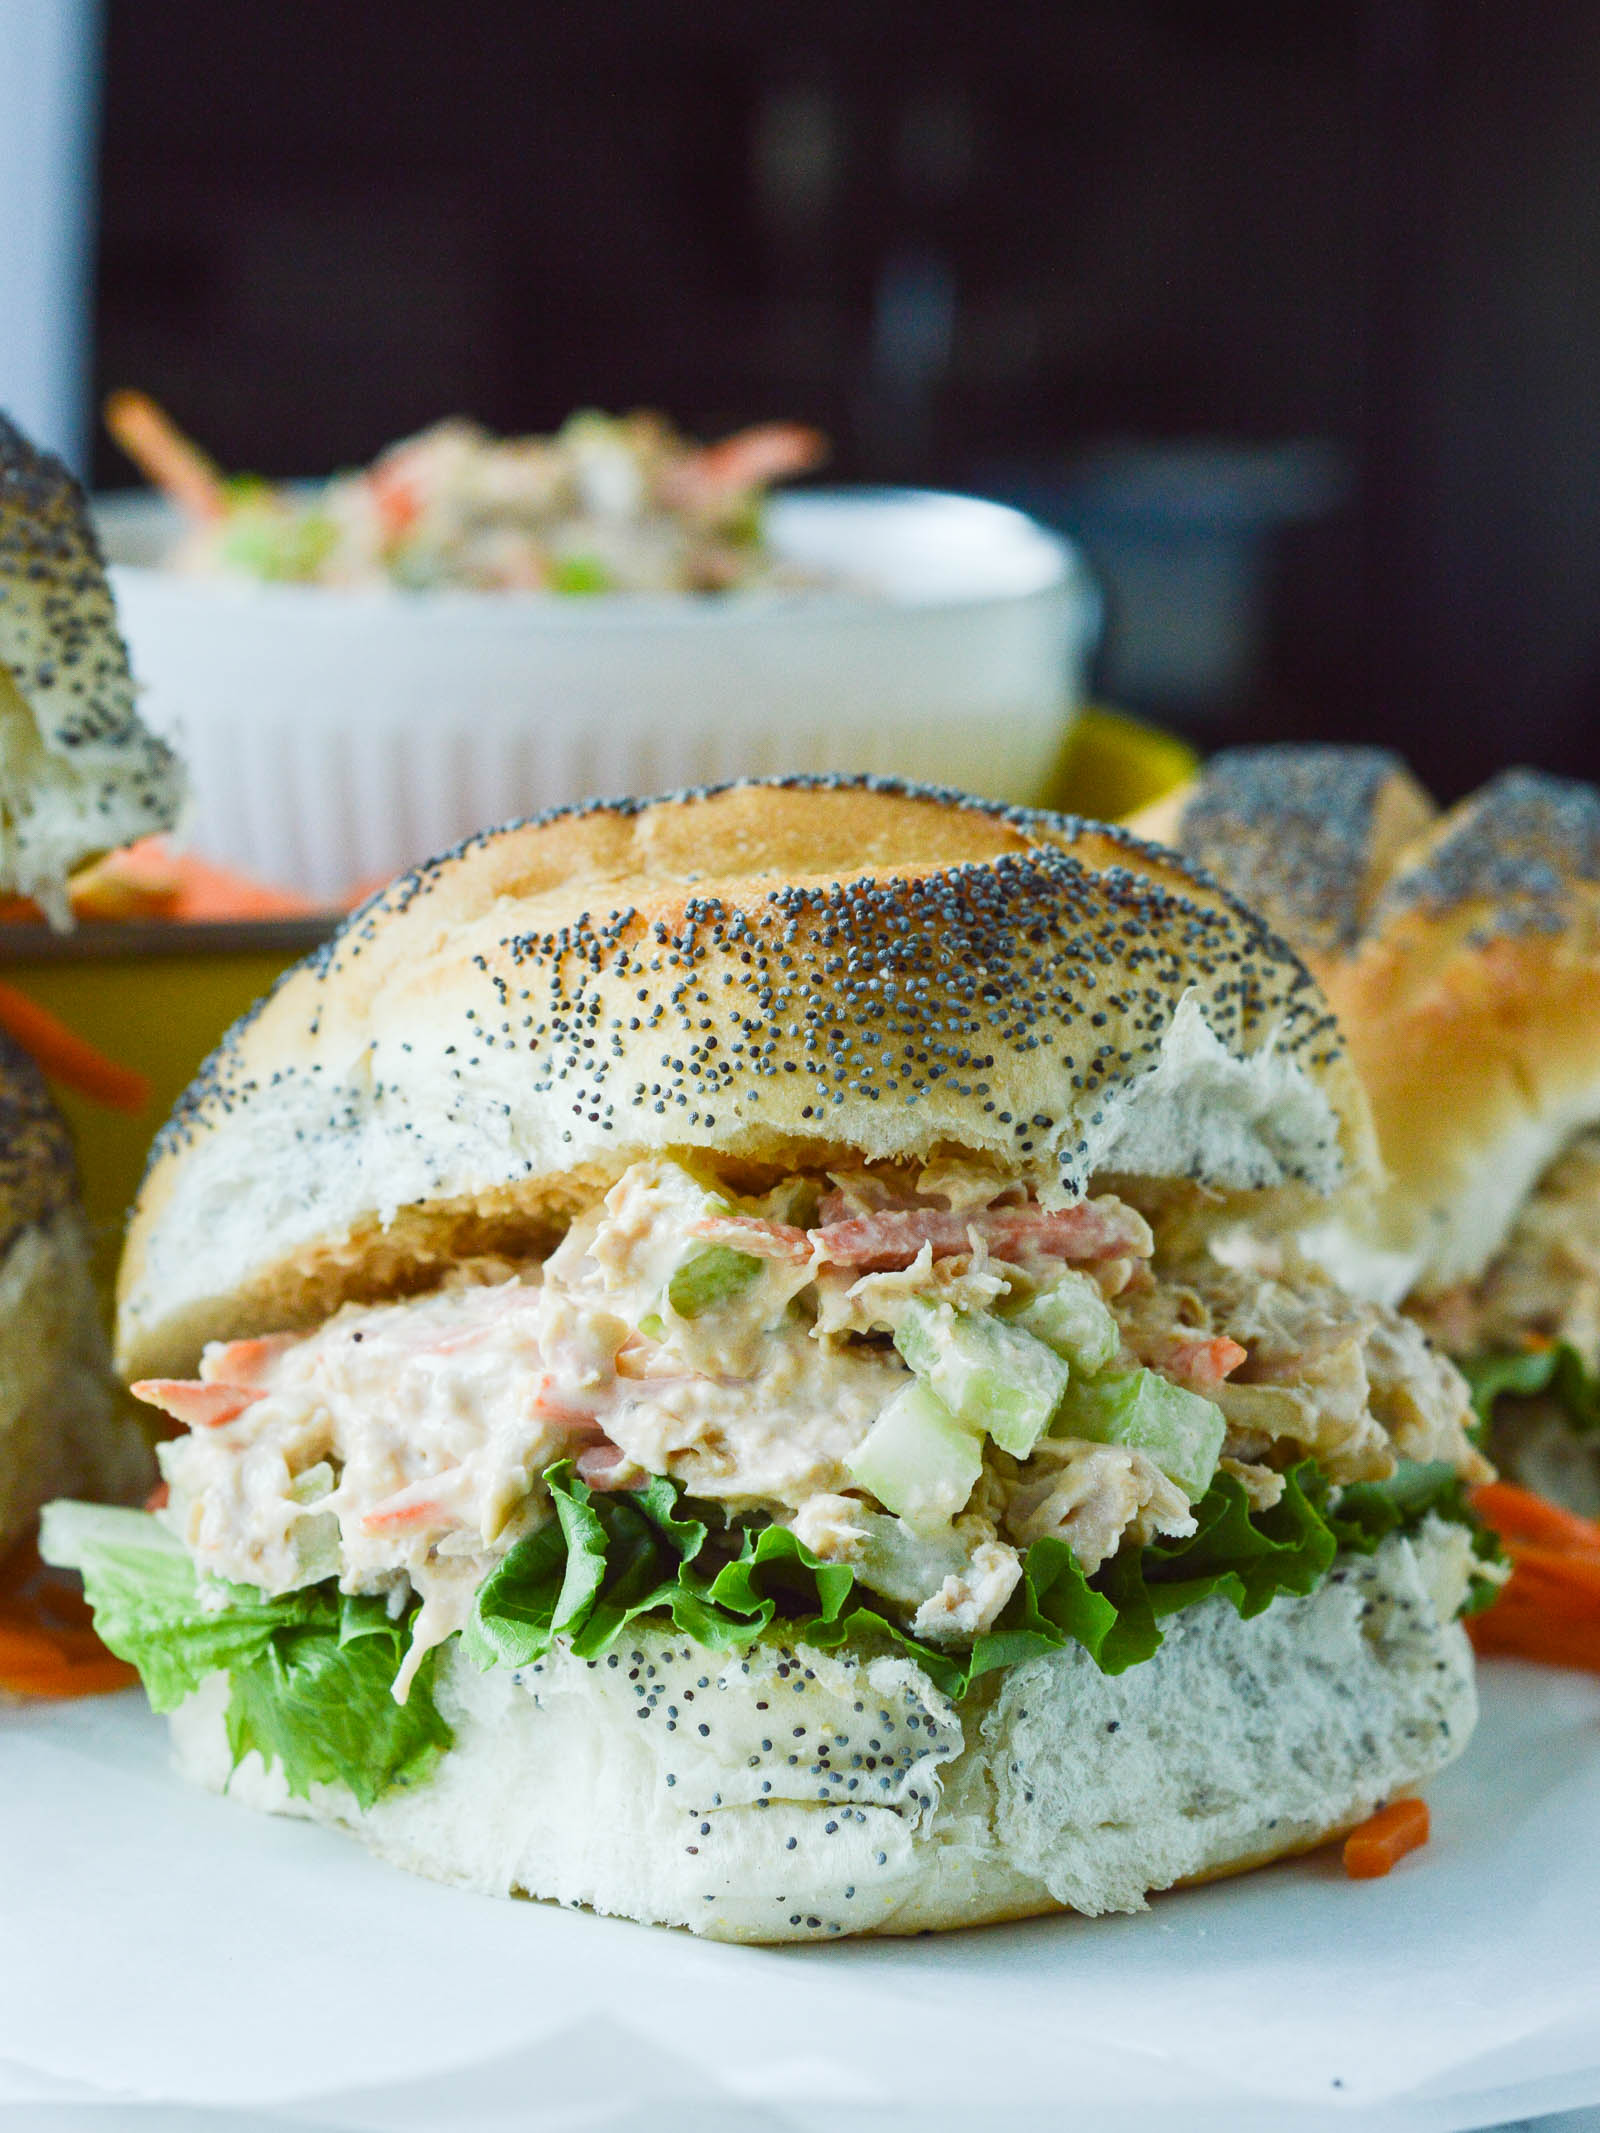 Buffalo Chicken Salad piled onto a fluffy poppy seed bun with green leafy lettuce